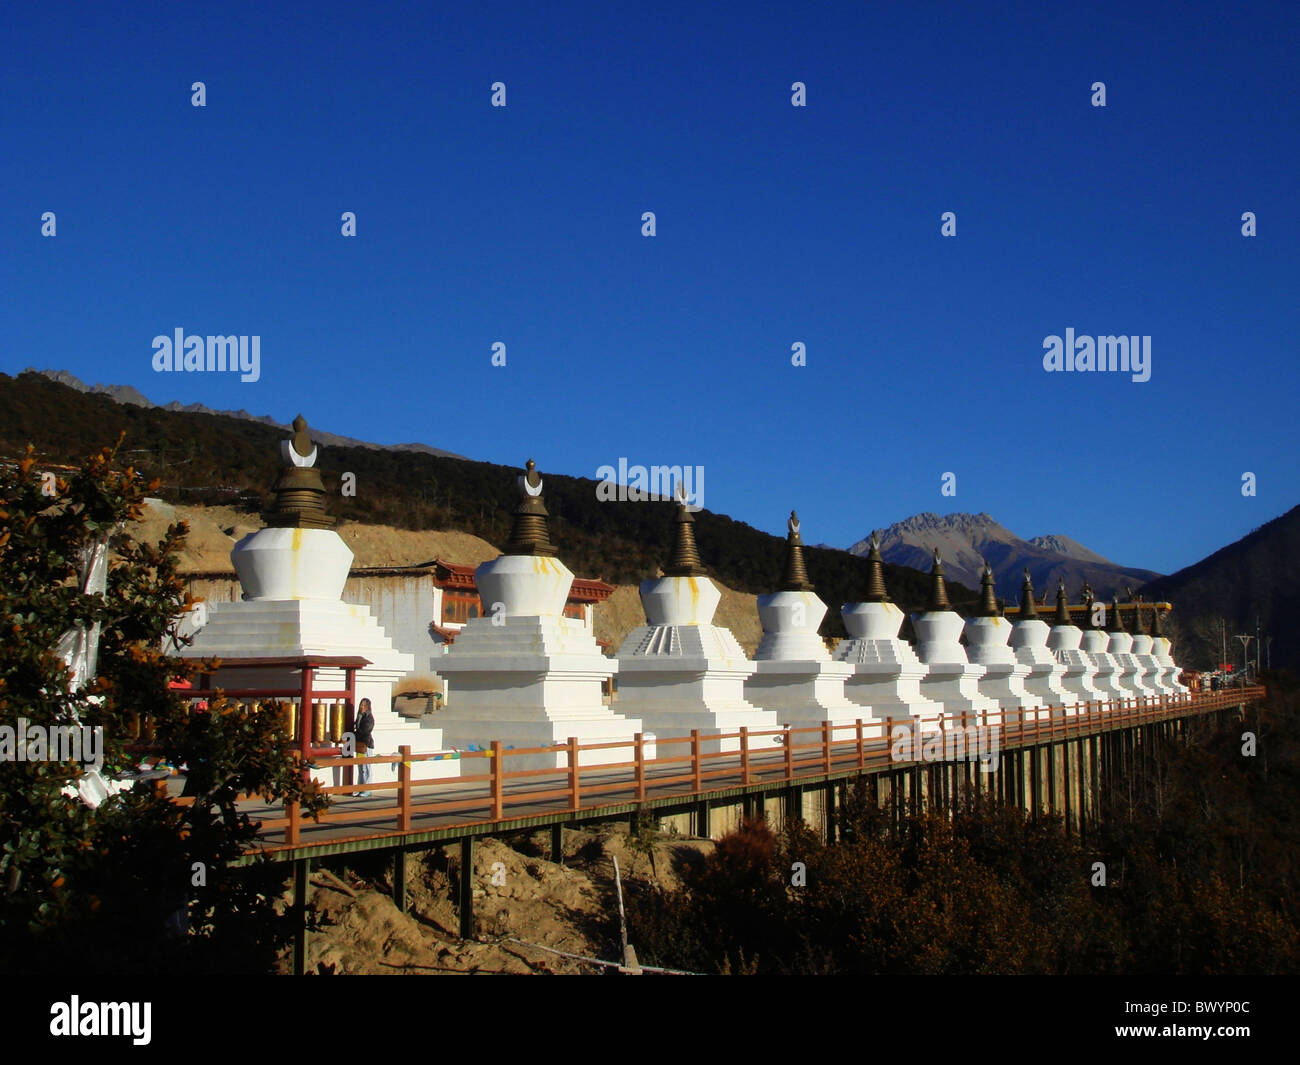 13 nos of stupas representing 13 peaks of Meili Snow Mountain, DiQing Tibetan Autonomous Prefecture, Yunnan Province, - Stock Image